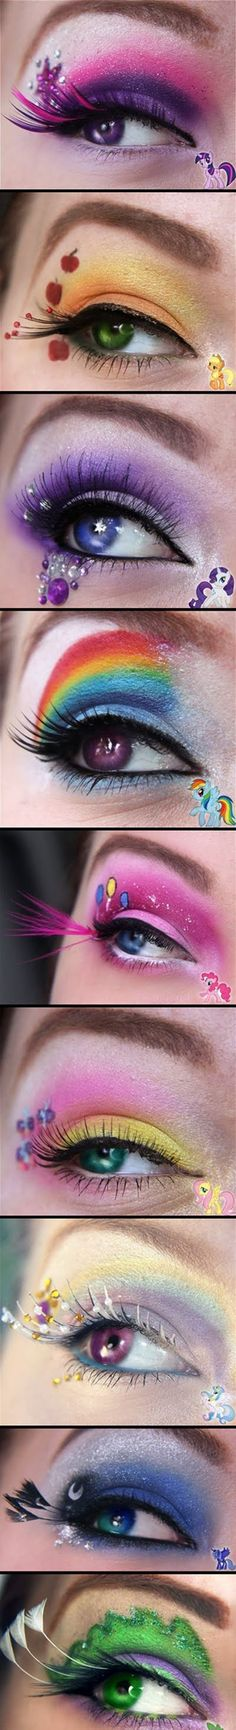 my little pony: friendship is magic inspired eye make-up. This makes me want to do the same with the Apocalypse ponies.